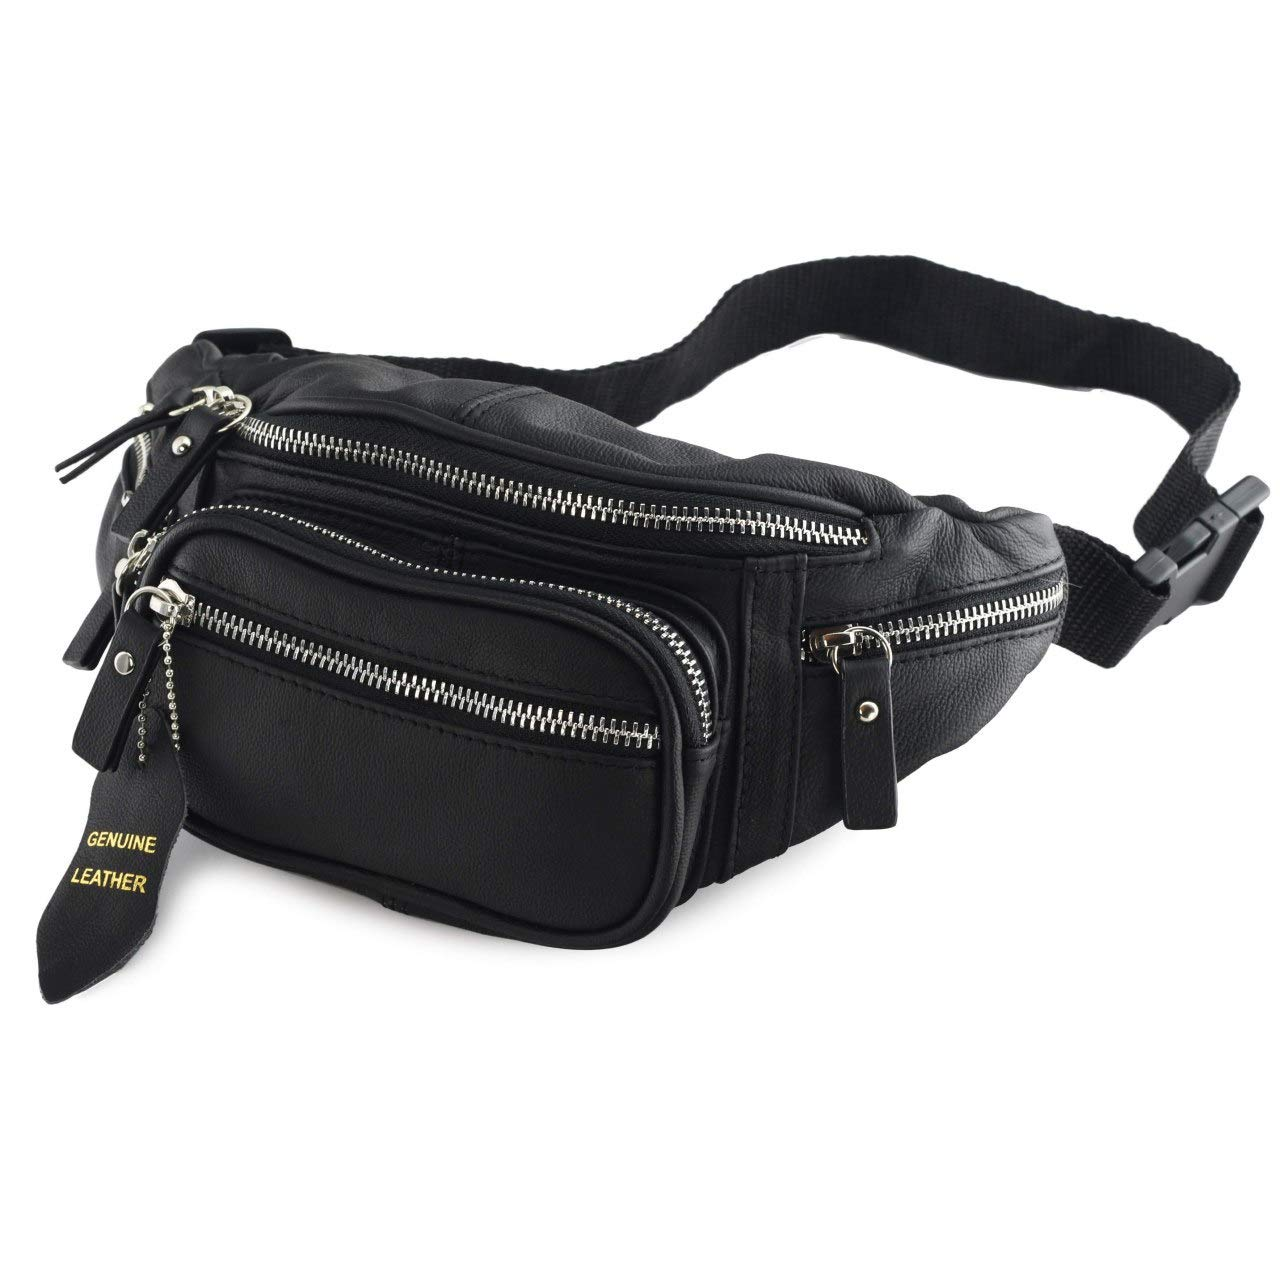 4379ba80cc65d Fanny Pack Multifunction, Genuine Leather Hip Bum Bag, Travel Pouch for Men  and Women- Multiple Pockets & Sturdy Zippers Ideal for Hiking Running and  ...